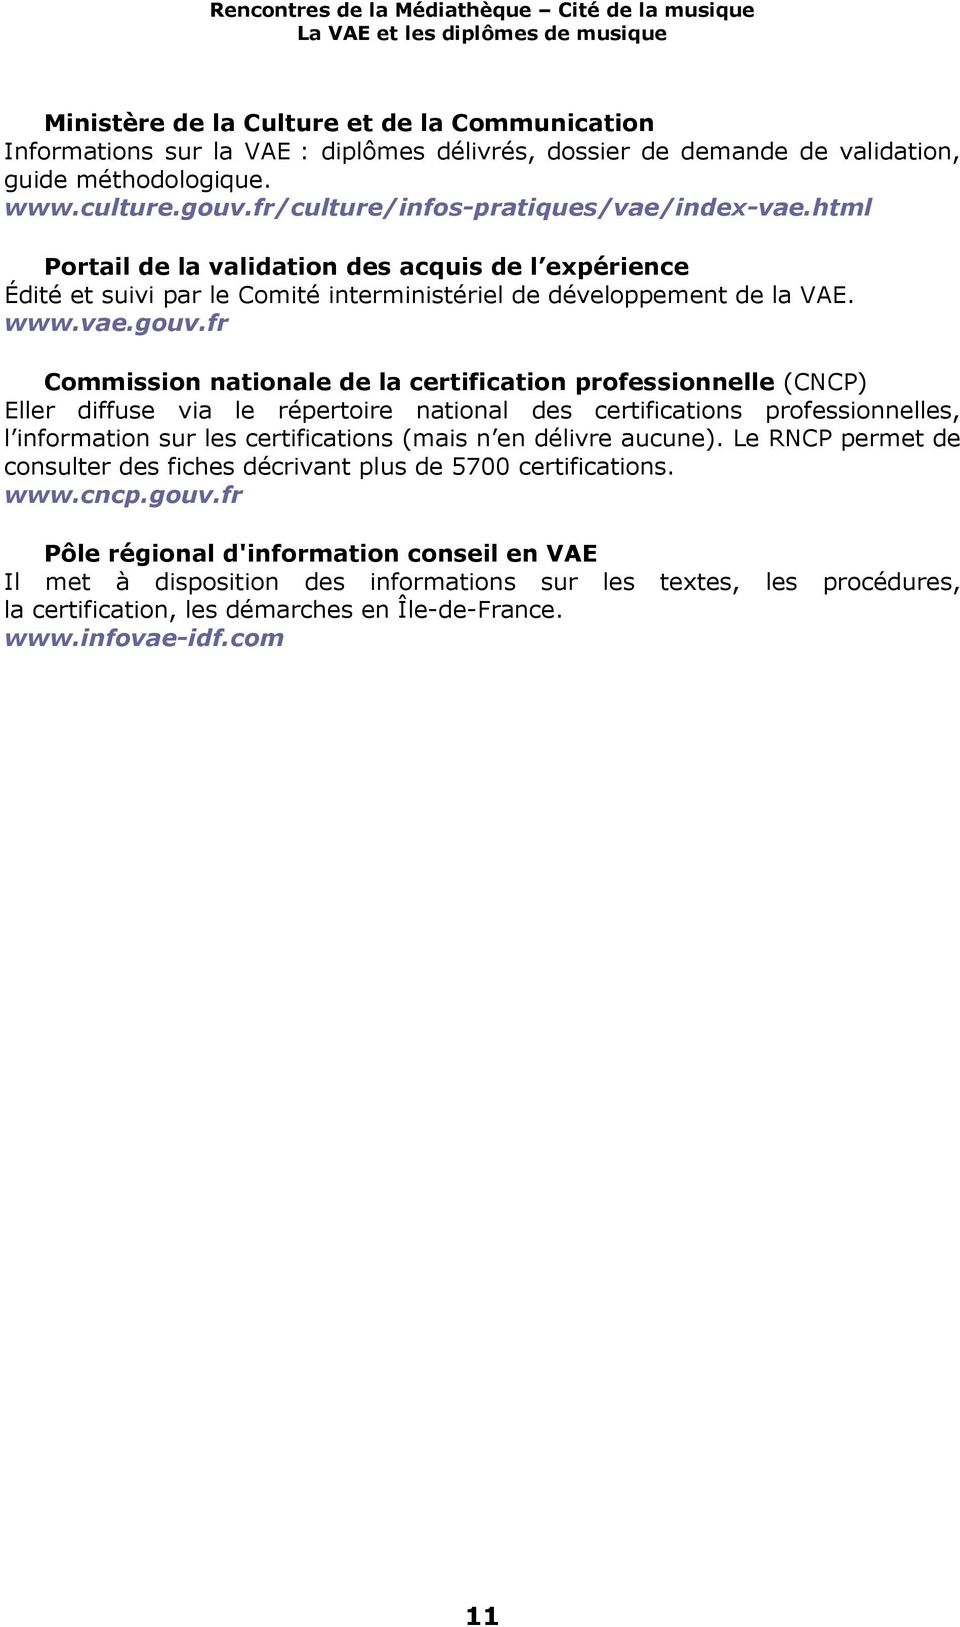 fr Commission nationale de la certification professionnelle (CNCP) Eller diffuse via le répertoire national des certifications professionnelles, l information sur les certifications (mais n en